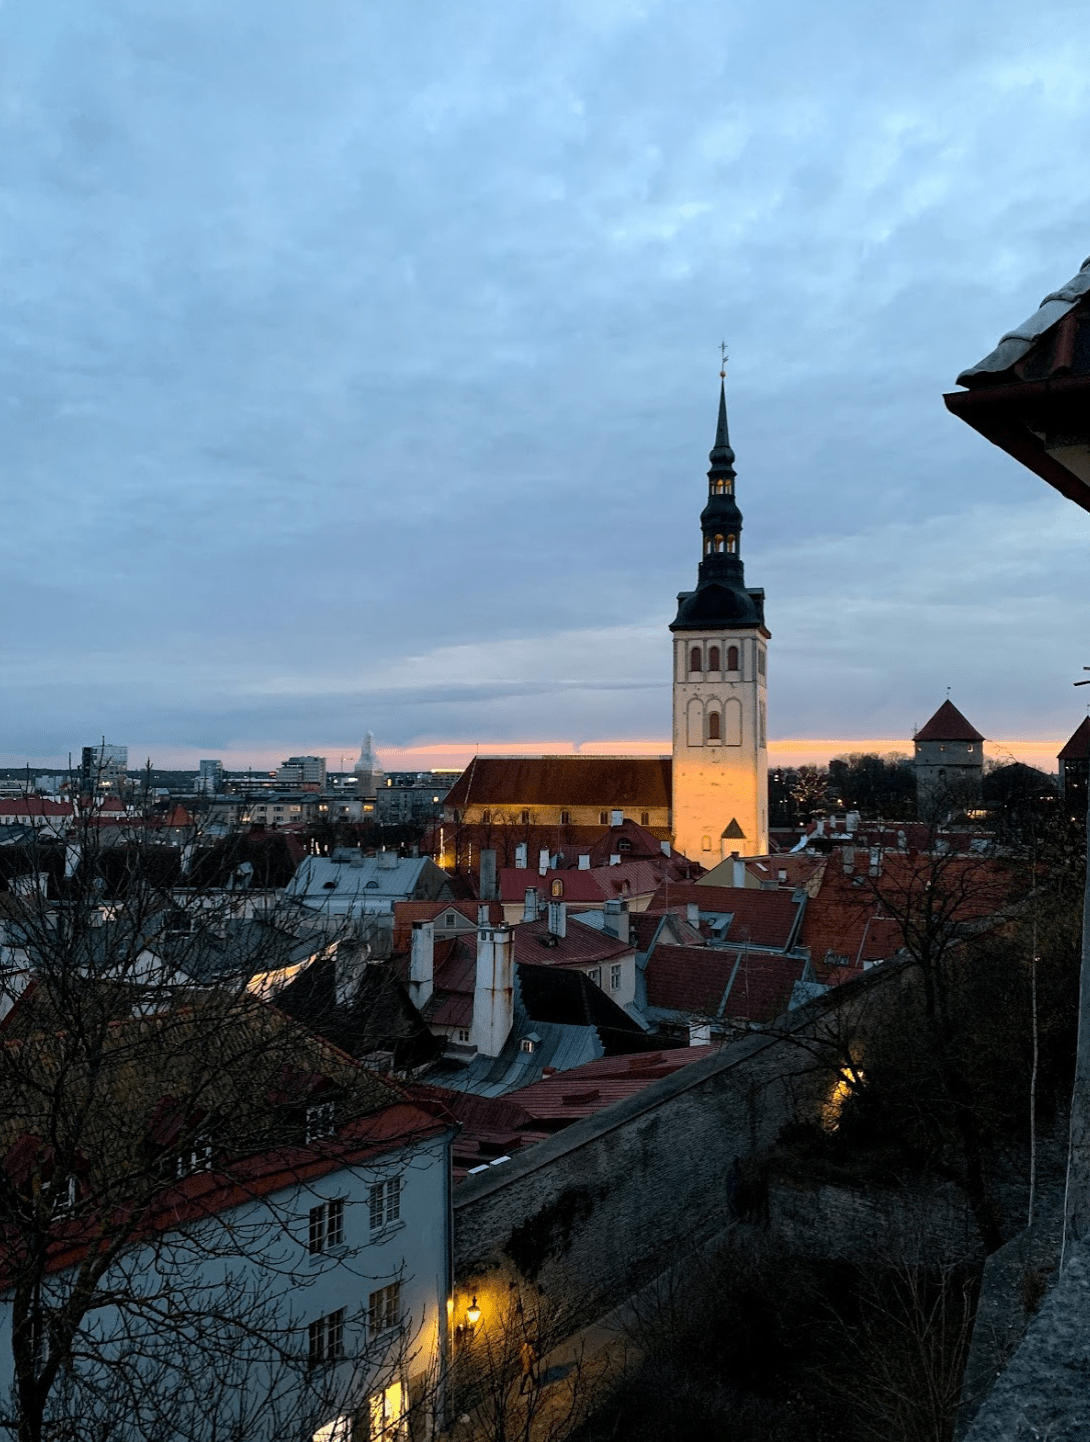 The Times We Had wall, Kohtuotsa viewing platform on Toompea Hill, Tallinn